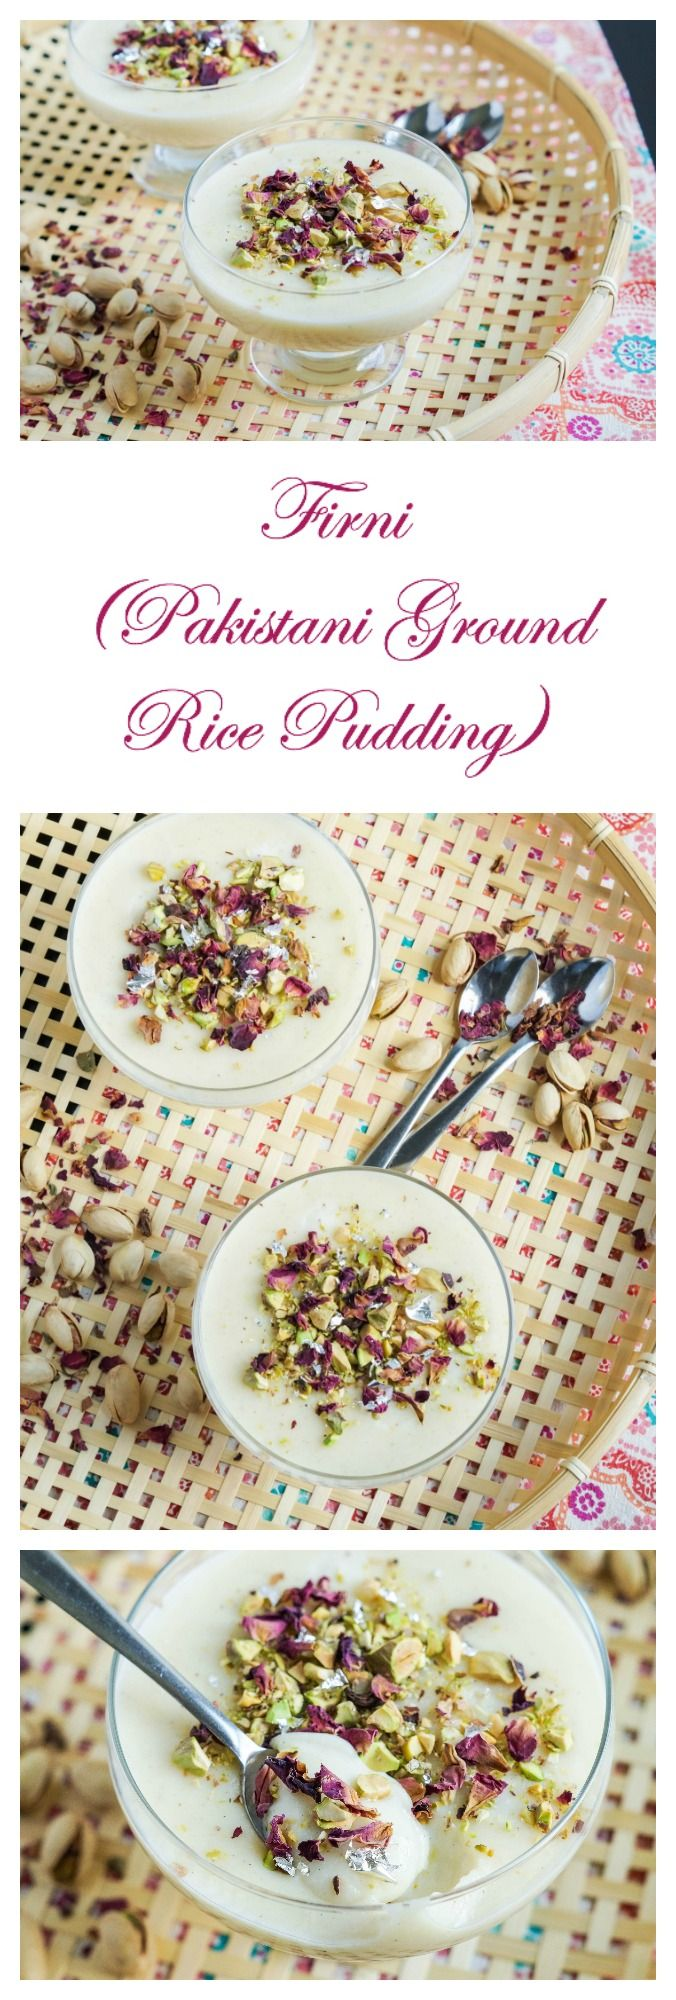 Indian rice puddings recipes for ground